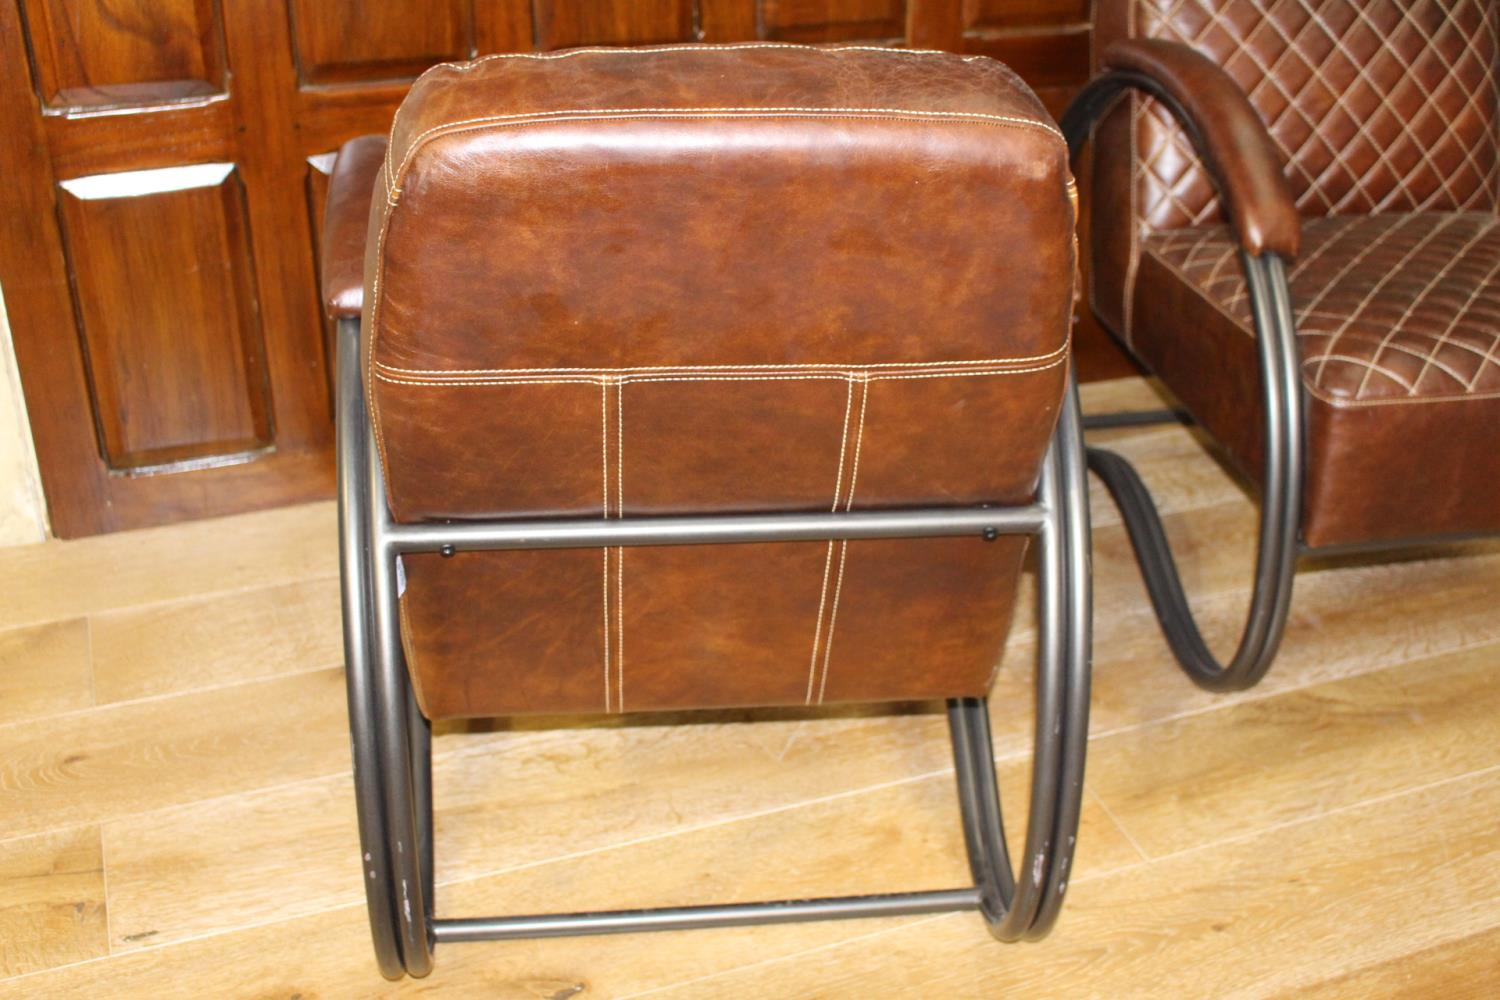 Pair of leather upholstered metal armchairs - Image 3 of 3